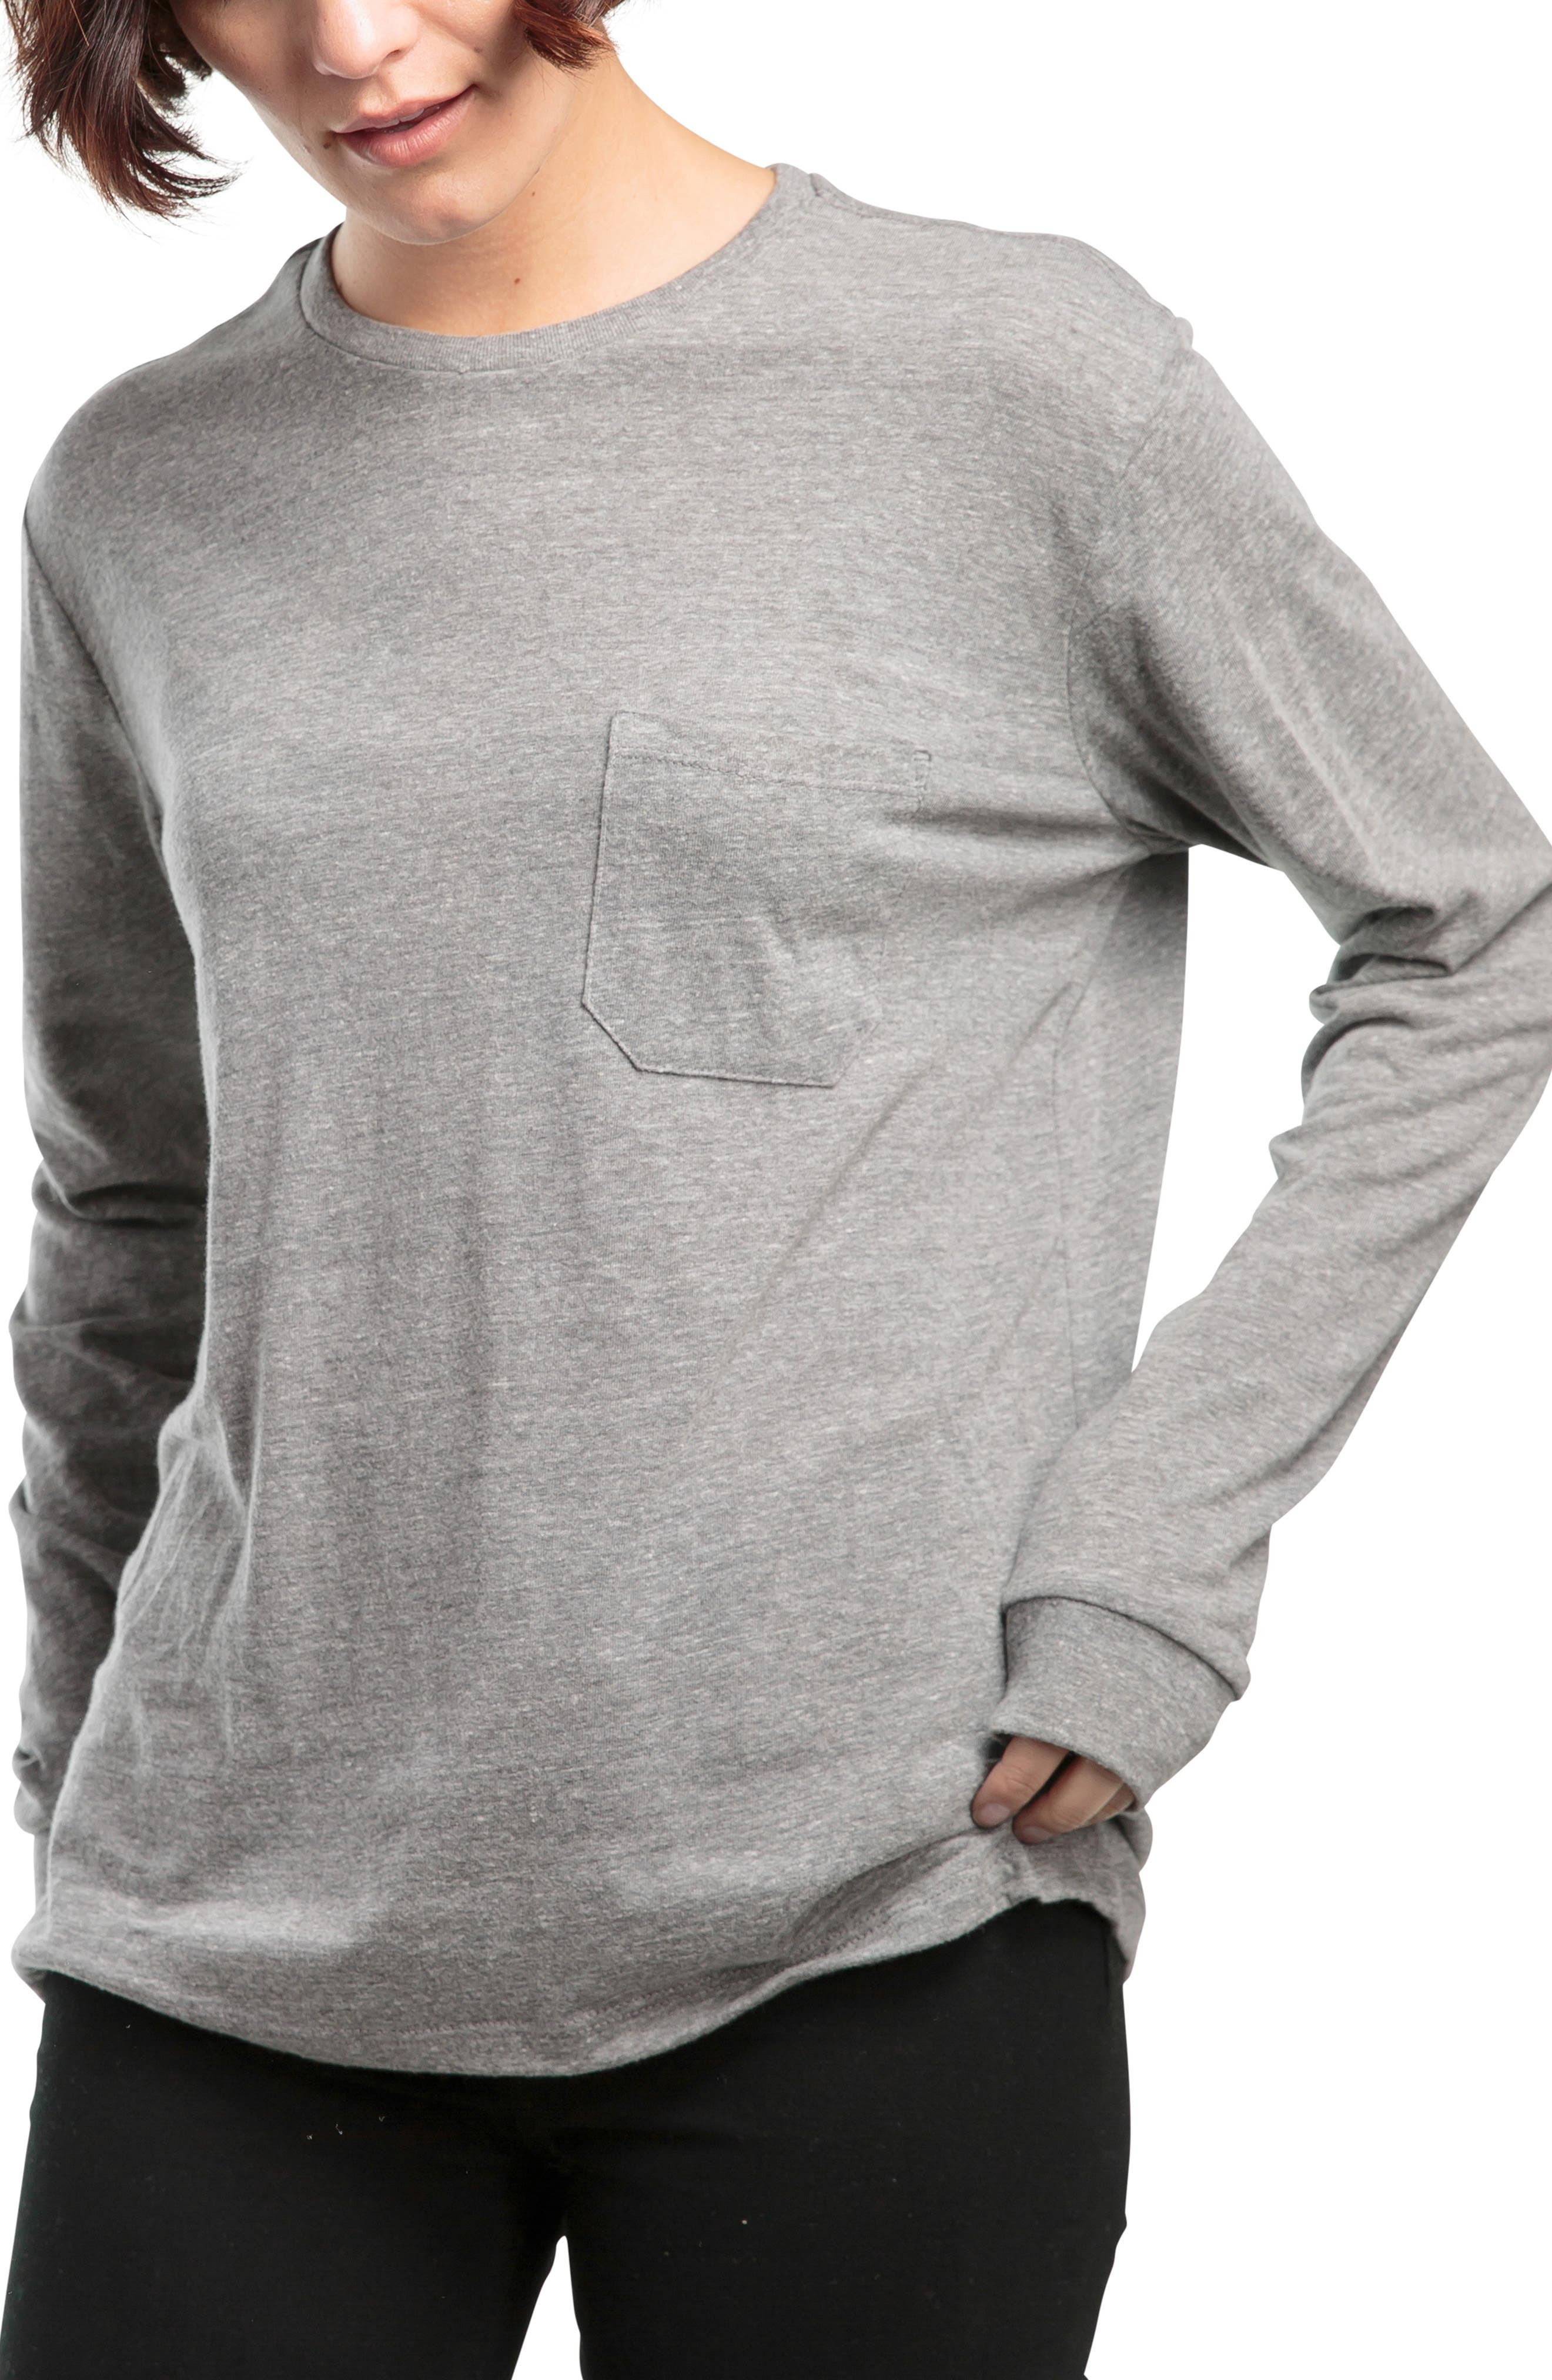 RICHER POORER, Long Sleeve Pocket Tee, Main thumbnail 1, color, 028